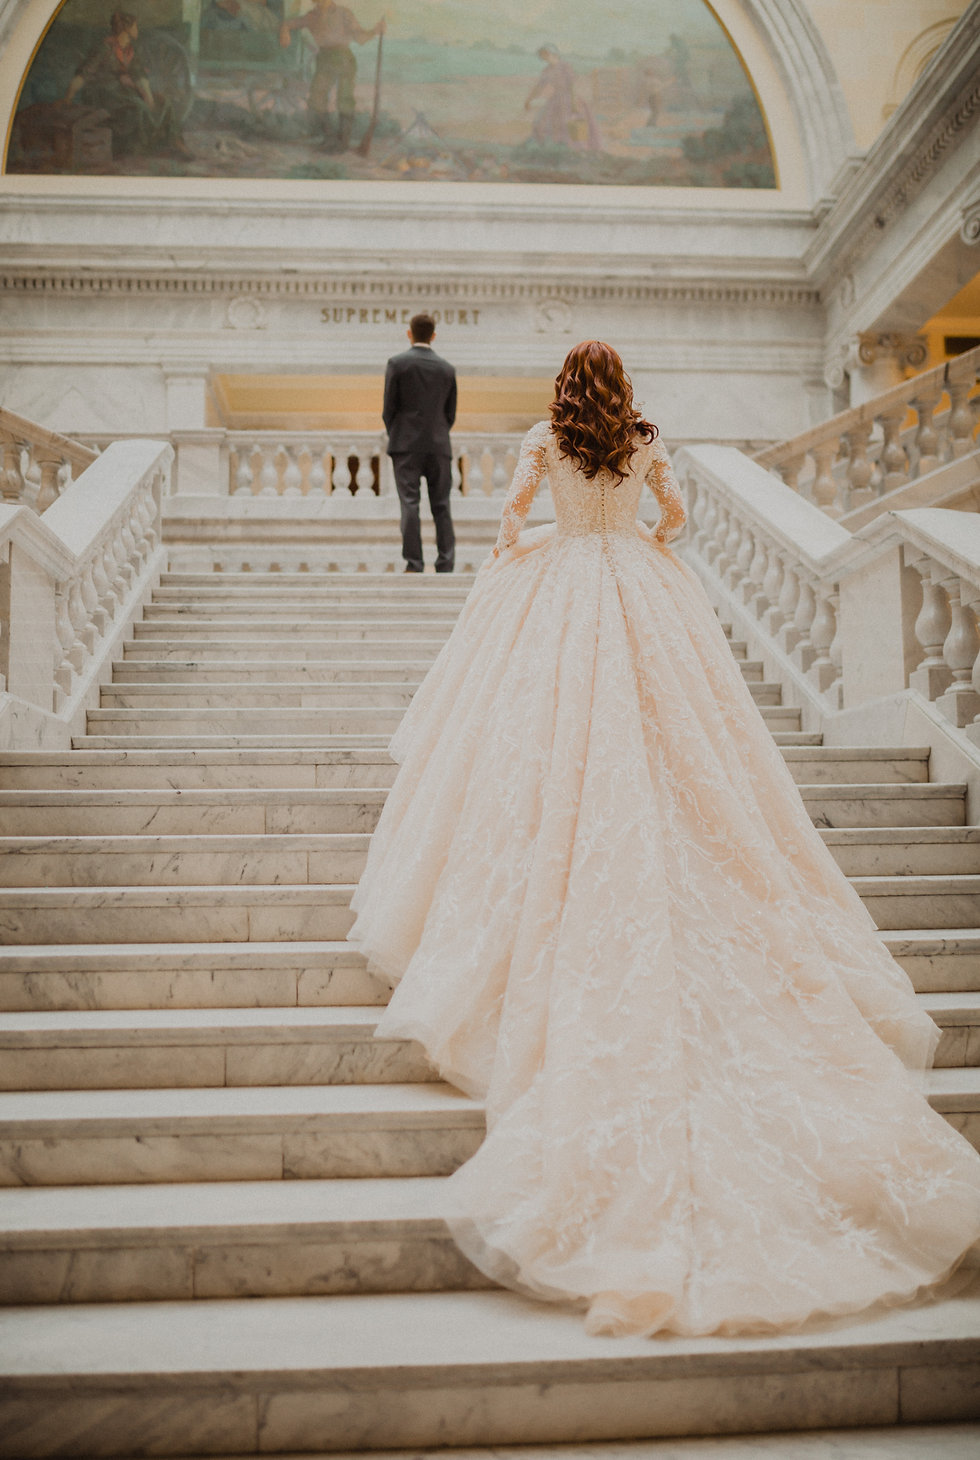 Bridal photo of bride walking up stairs in long wedding dress with groom waiting at the top of the stairs